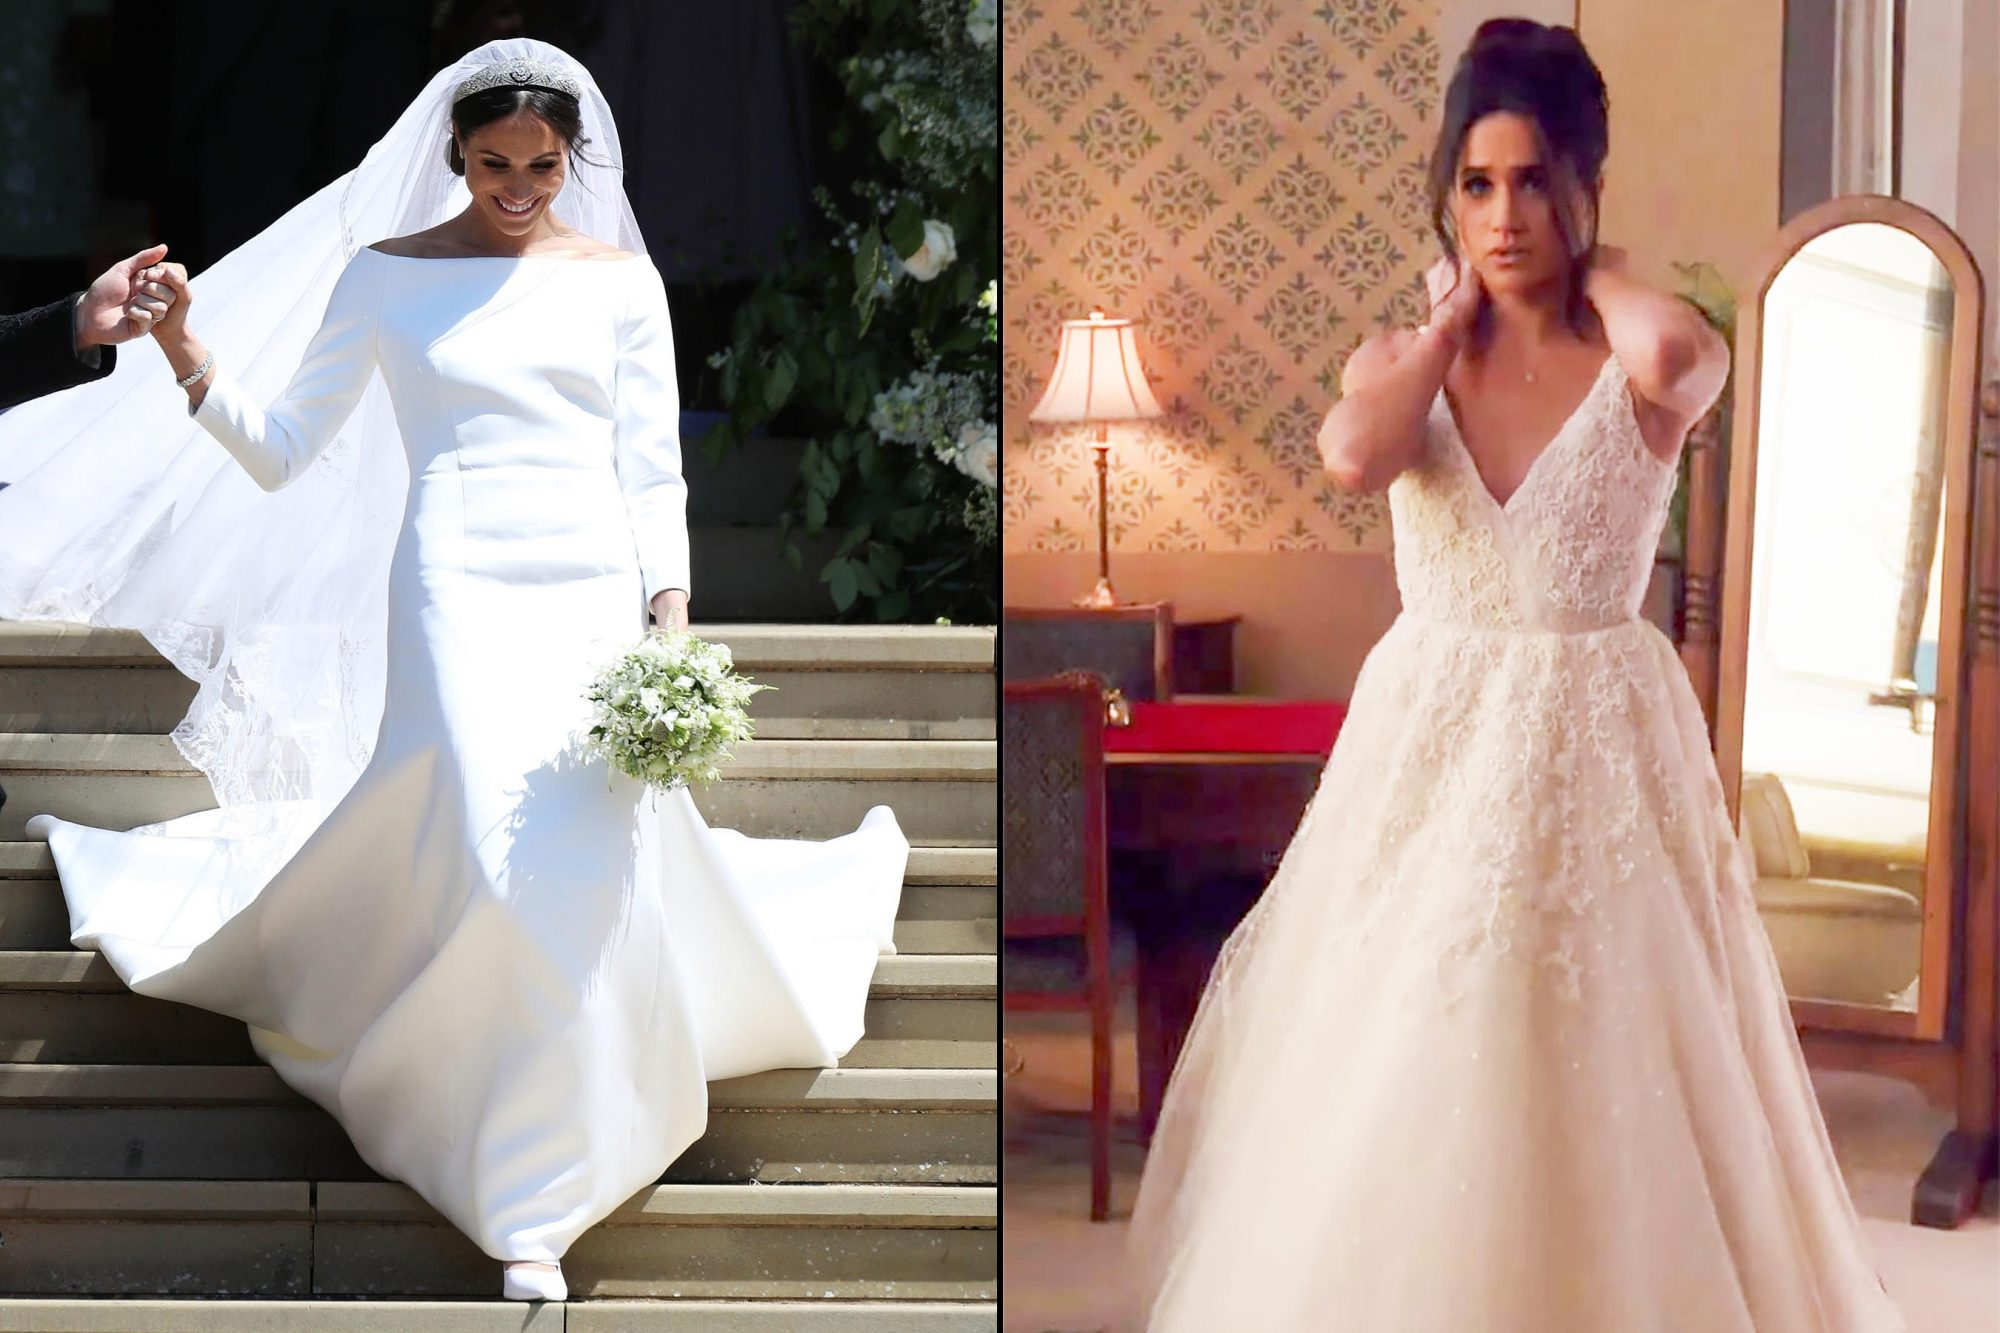 how meghan markle s suits wedding compared to her royal wedding ew com how meghan markle s suits wedding